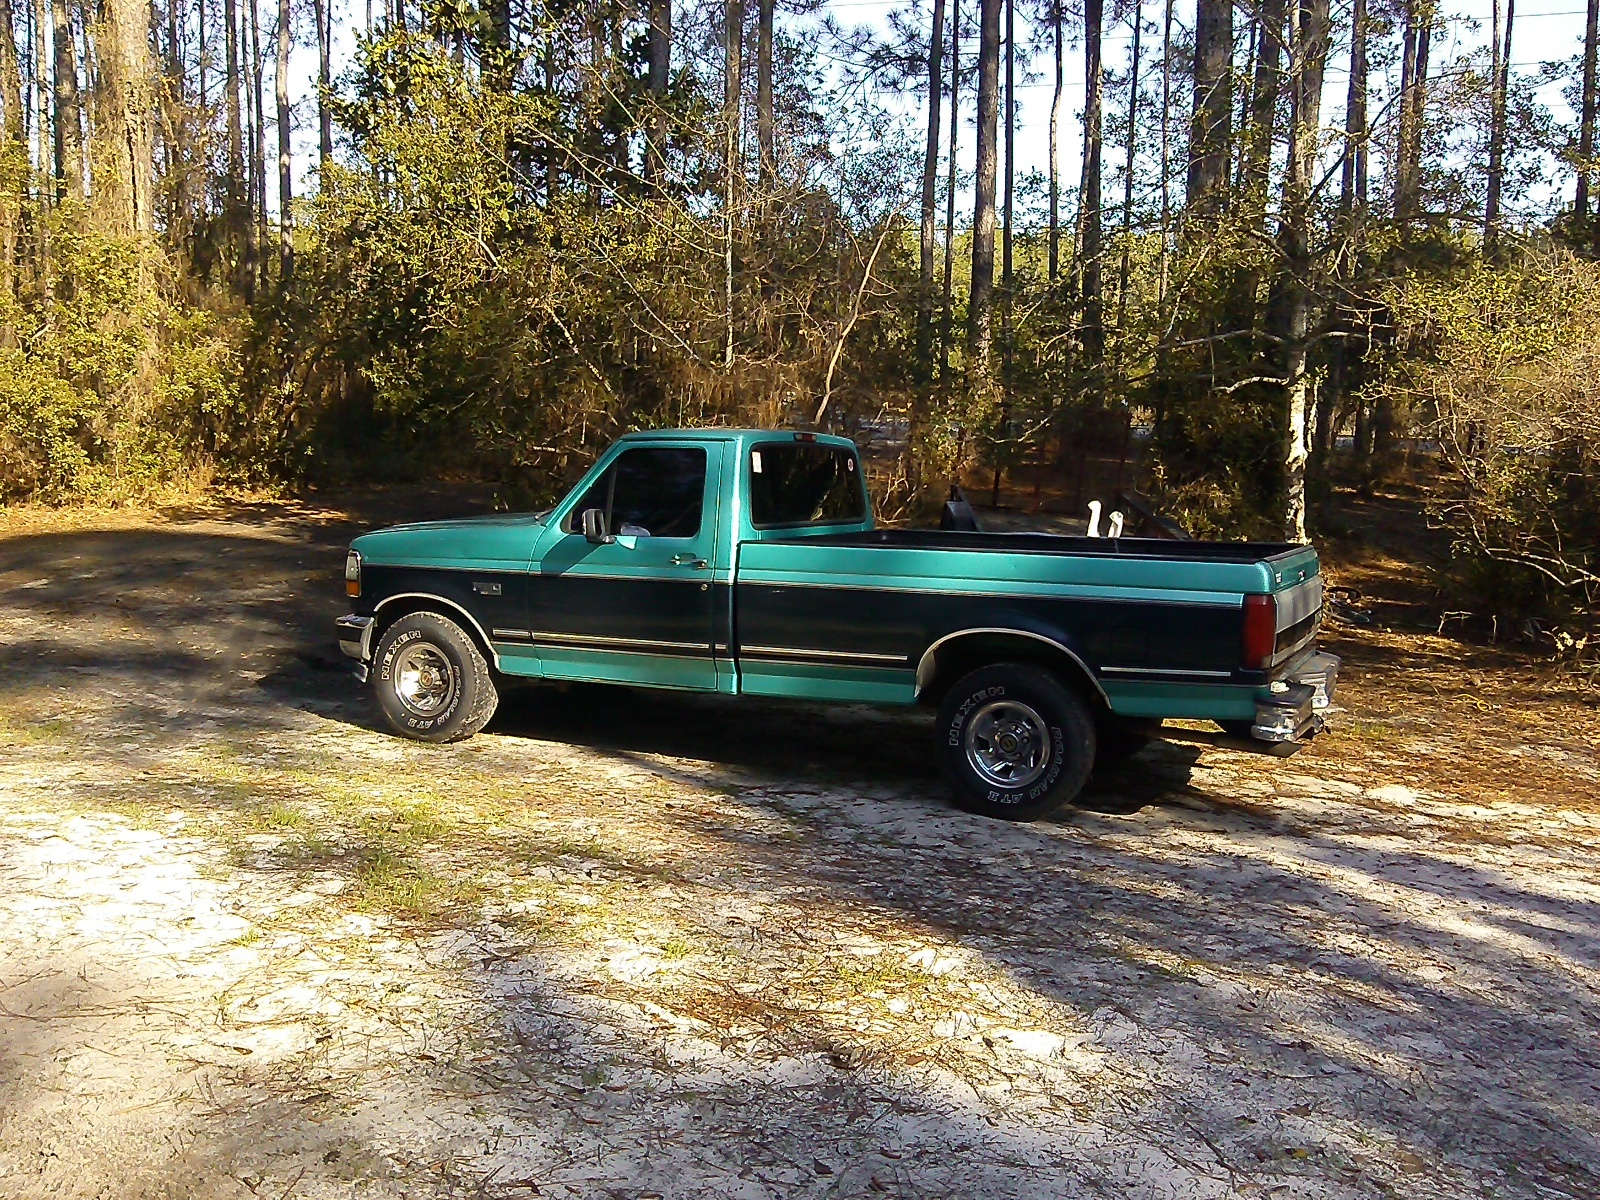 Mazda 626 a1248077788b2869541 p further 1994 Ford F 150 Overview C5245 together with Chevrolet Colorado Engine Diagram together with 2006 Ford Freestyle Overview C3714 further 3 6 Timing Chain Diagram. on ford 5 0 liter engine problems